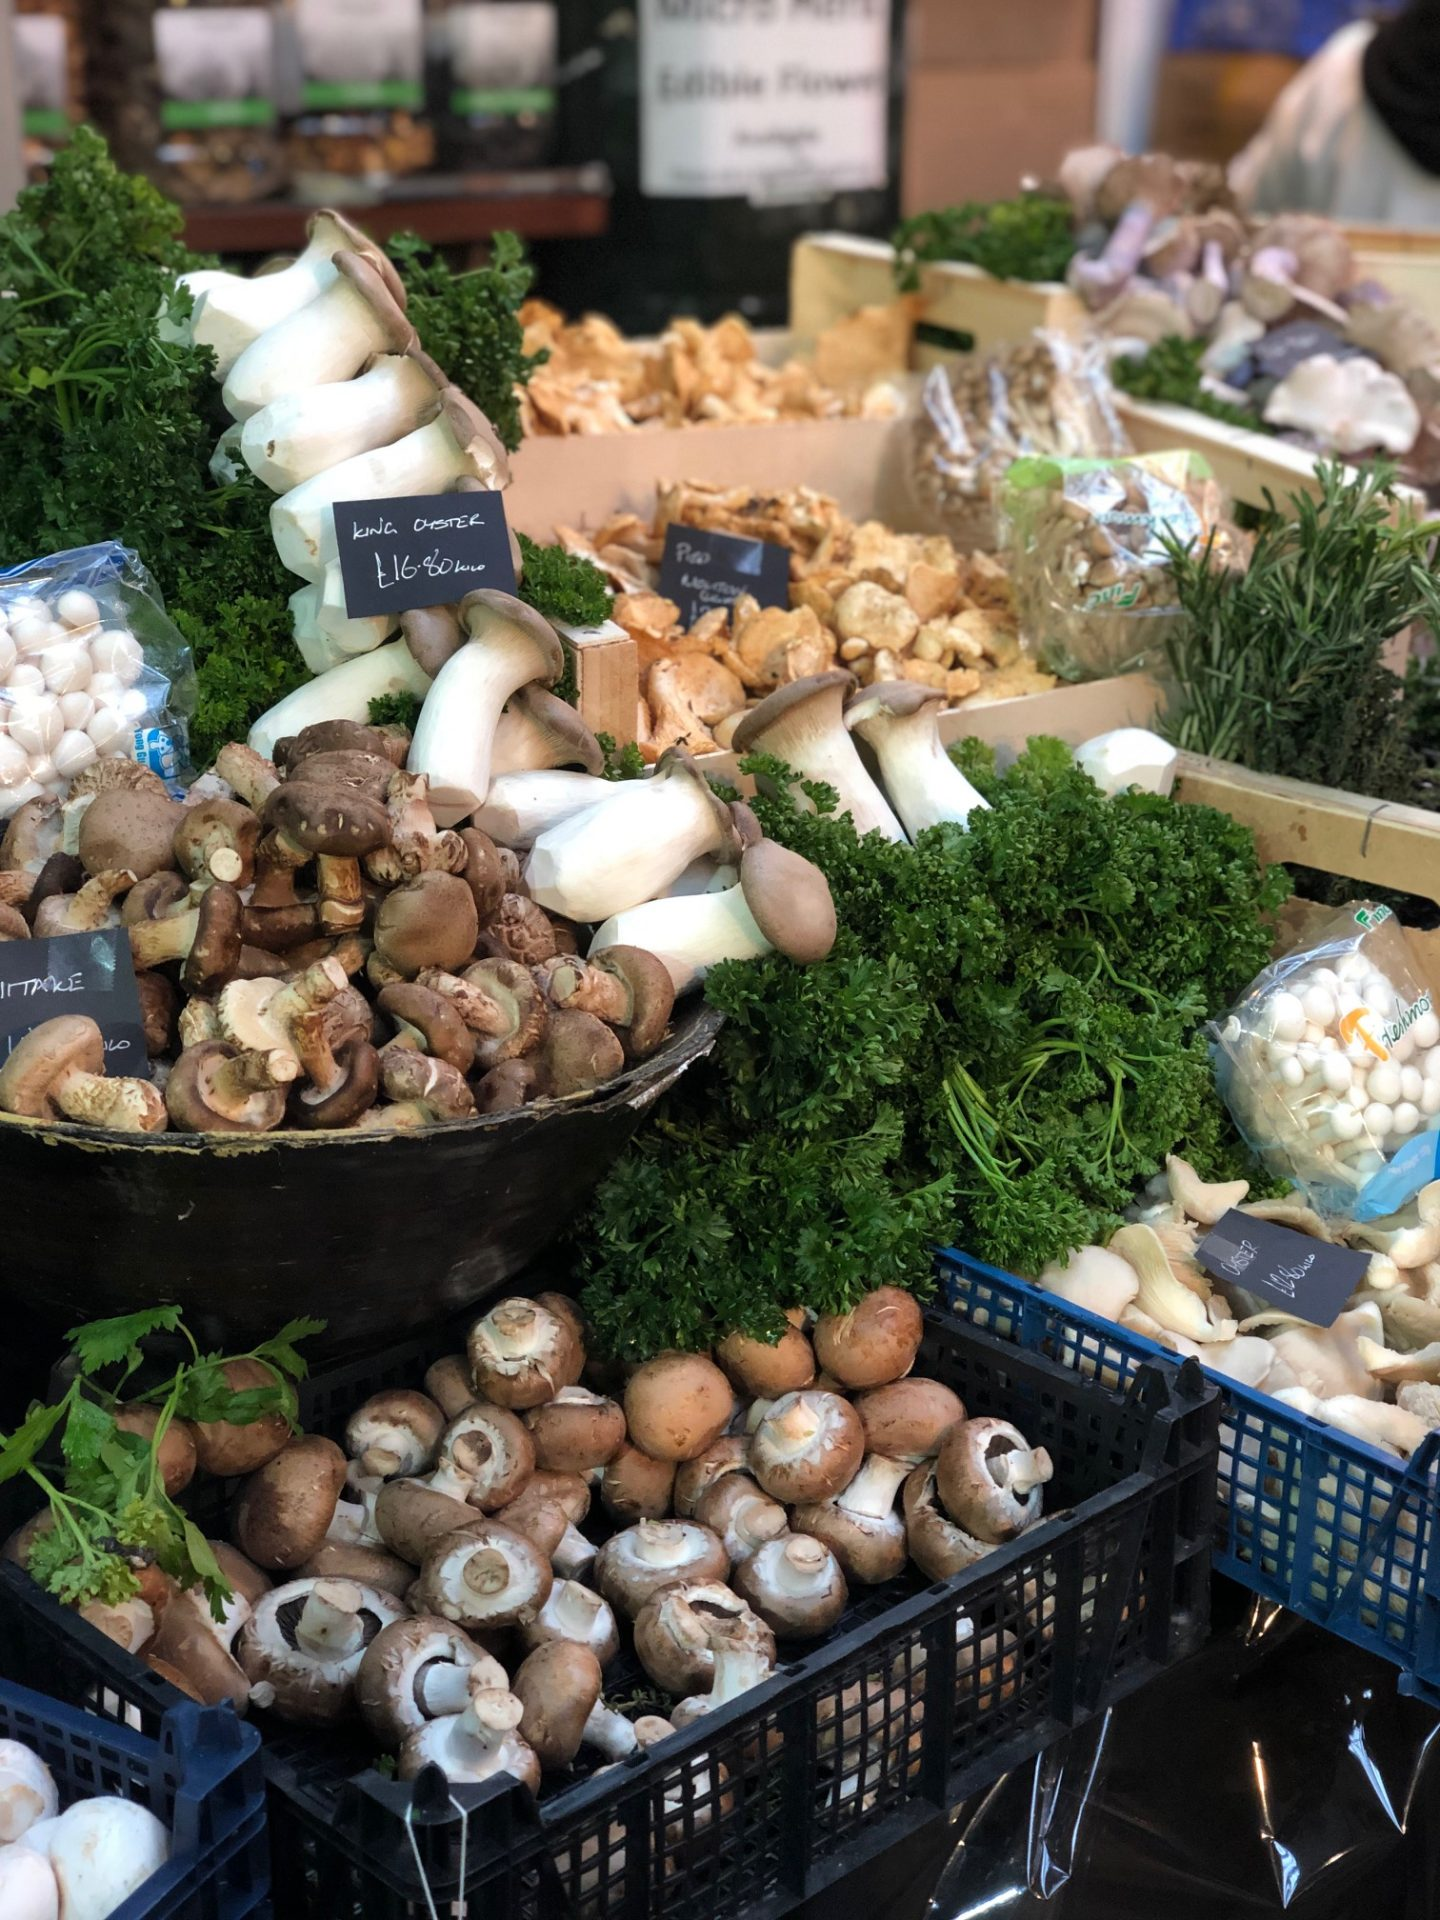 A shot of a mushroom stand in Borough Market during a day out in London